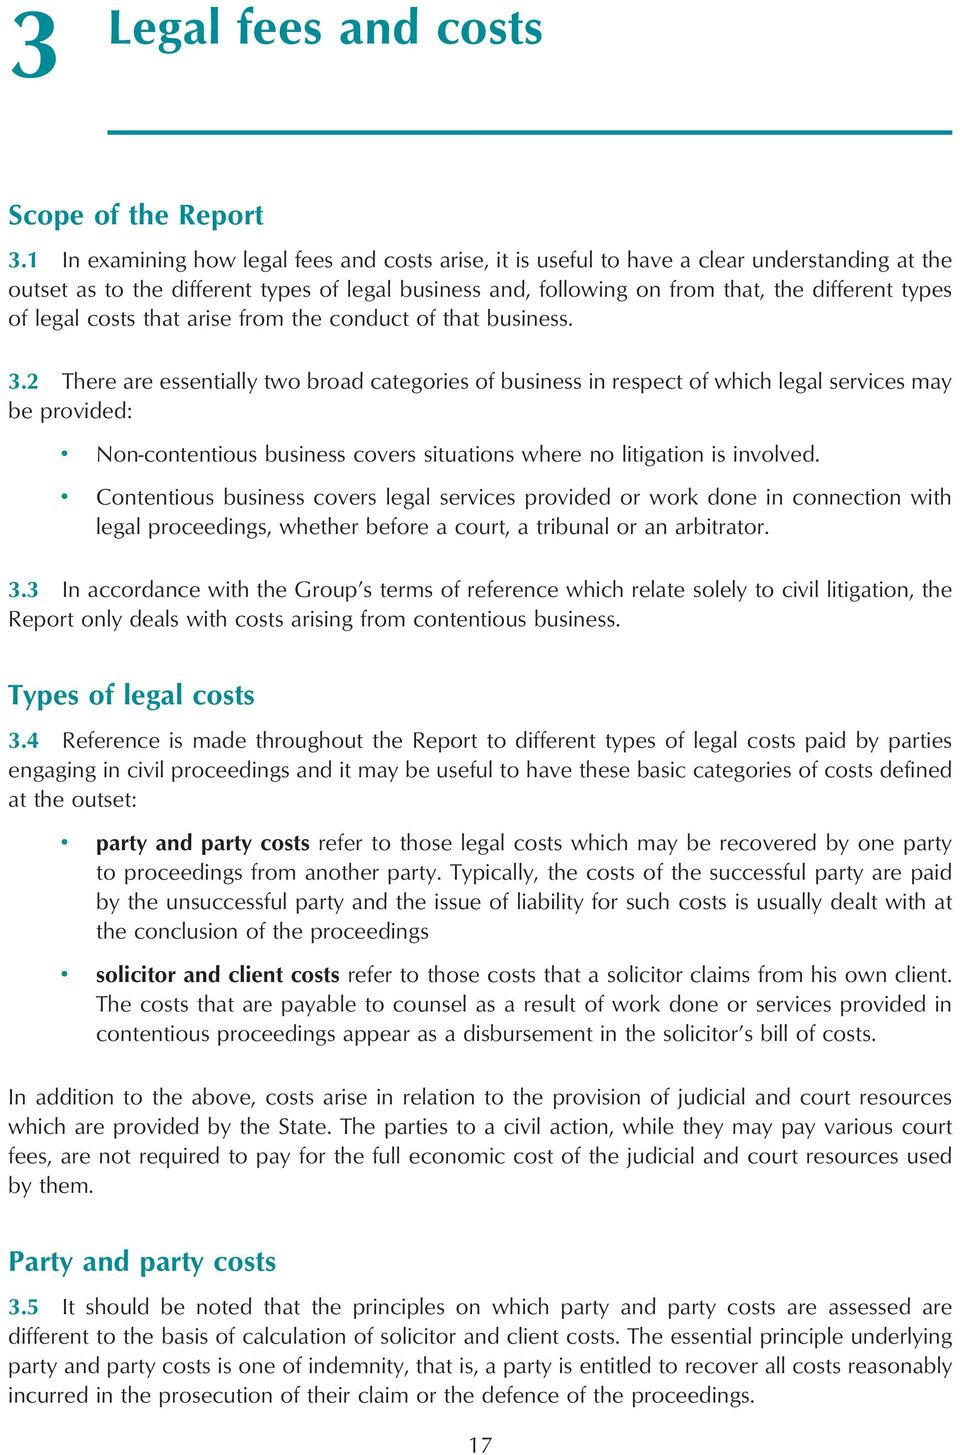 legal costs that arise from the conduct of that business. 3.